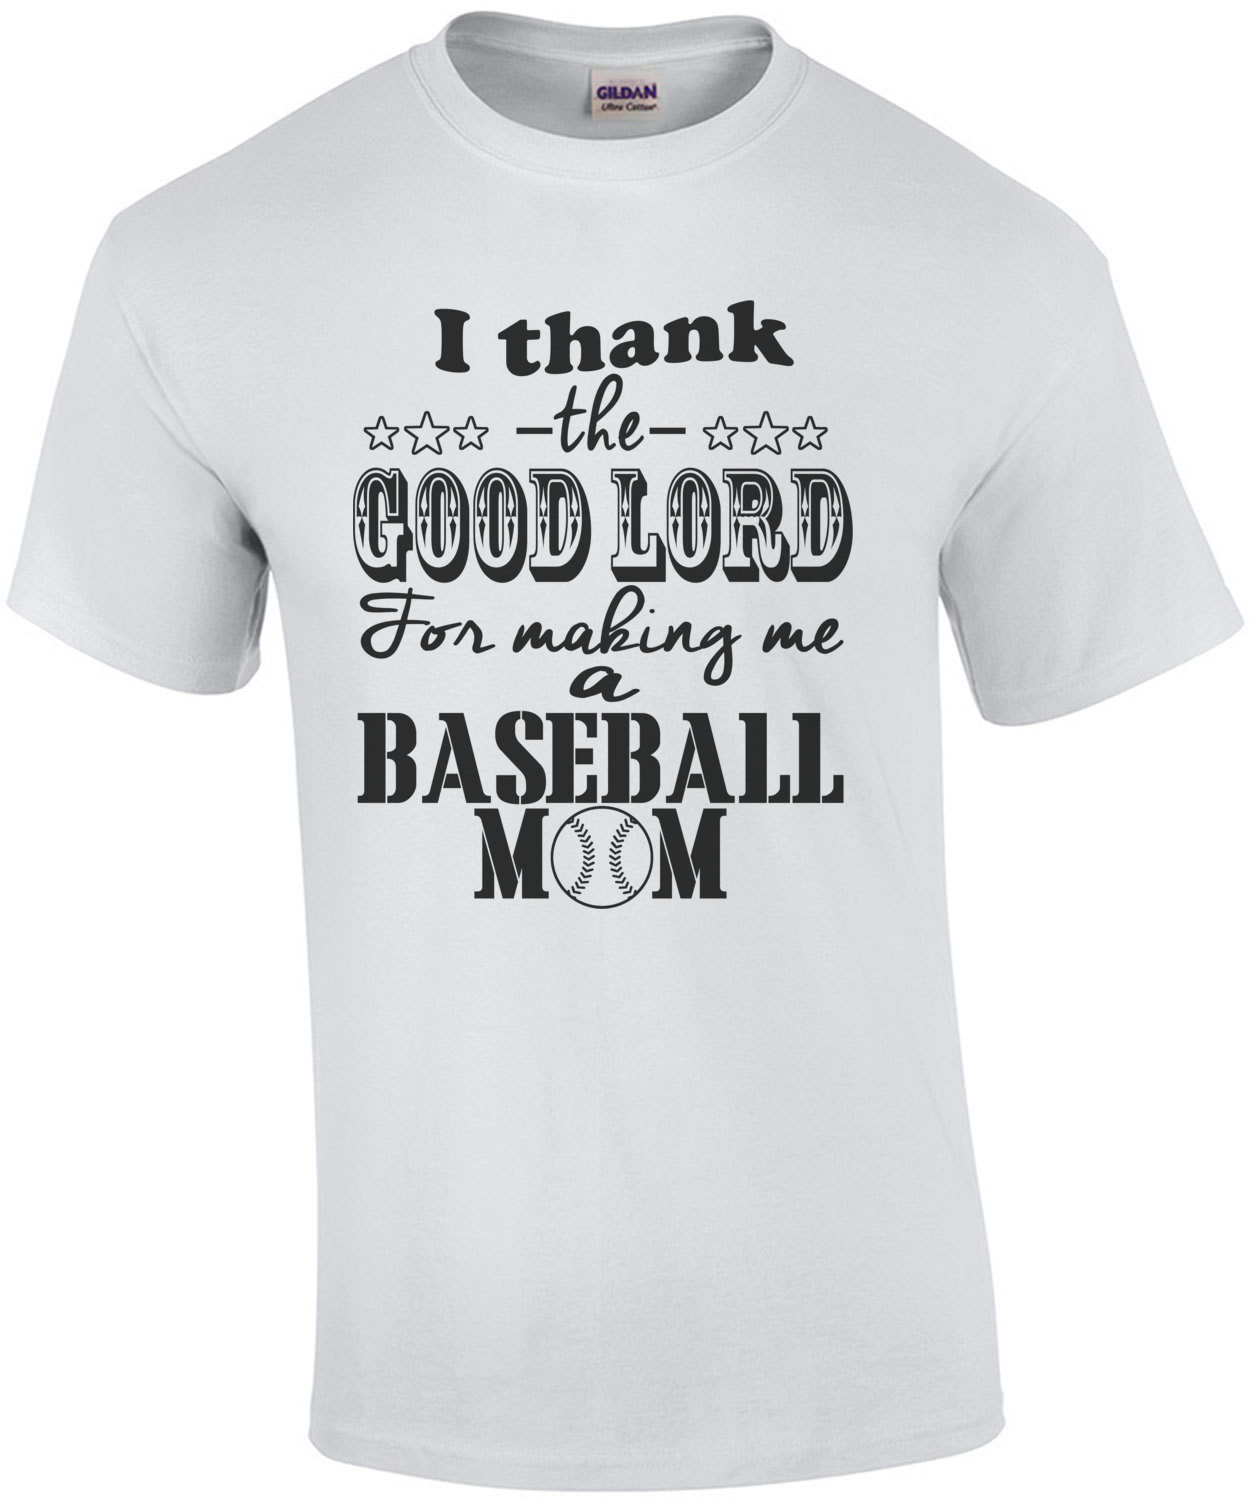 I Thank The Good Lord For Making Me A Baseball Mom T-Shirt